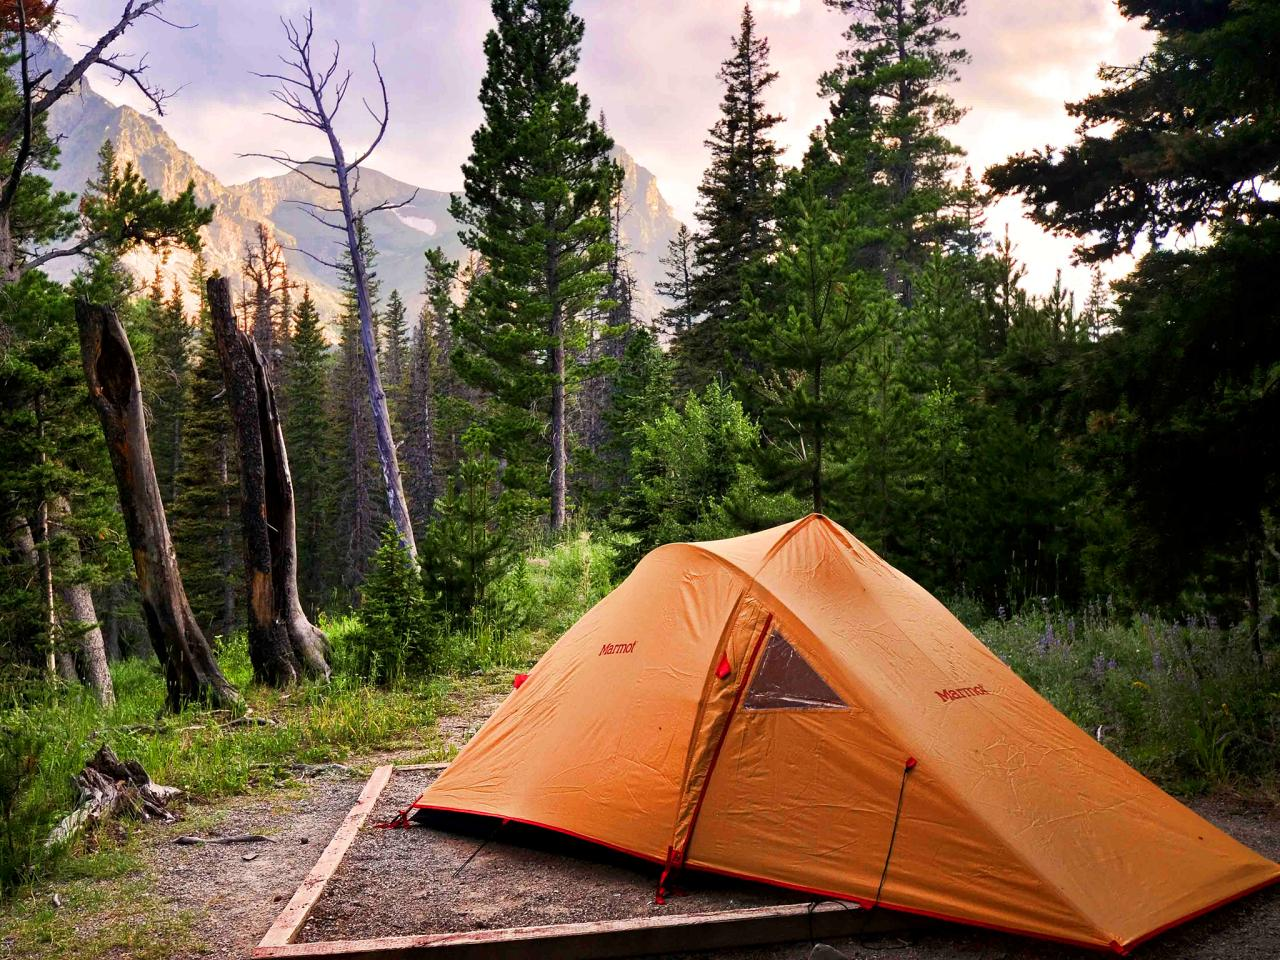 ViralityToday - 12 Of The Best American Campgrounds for R&R